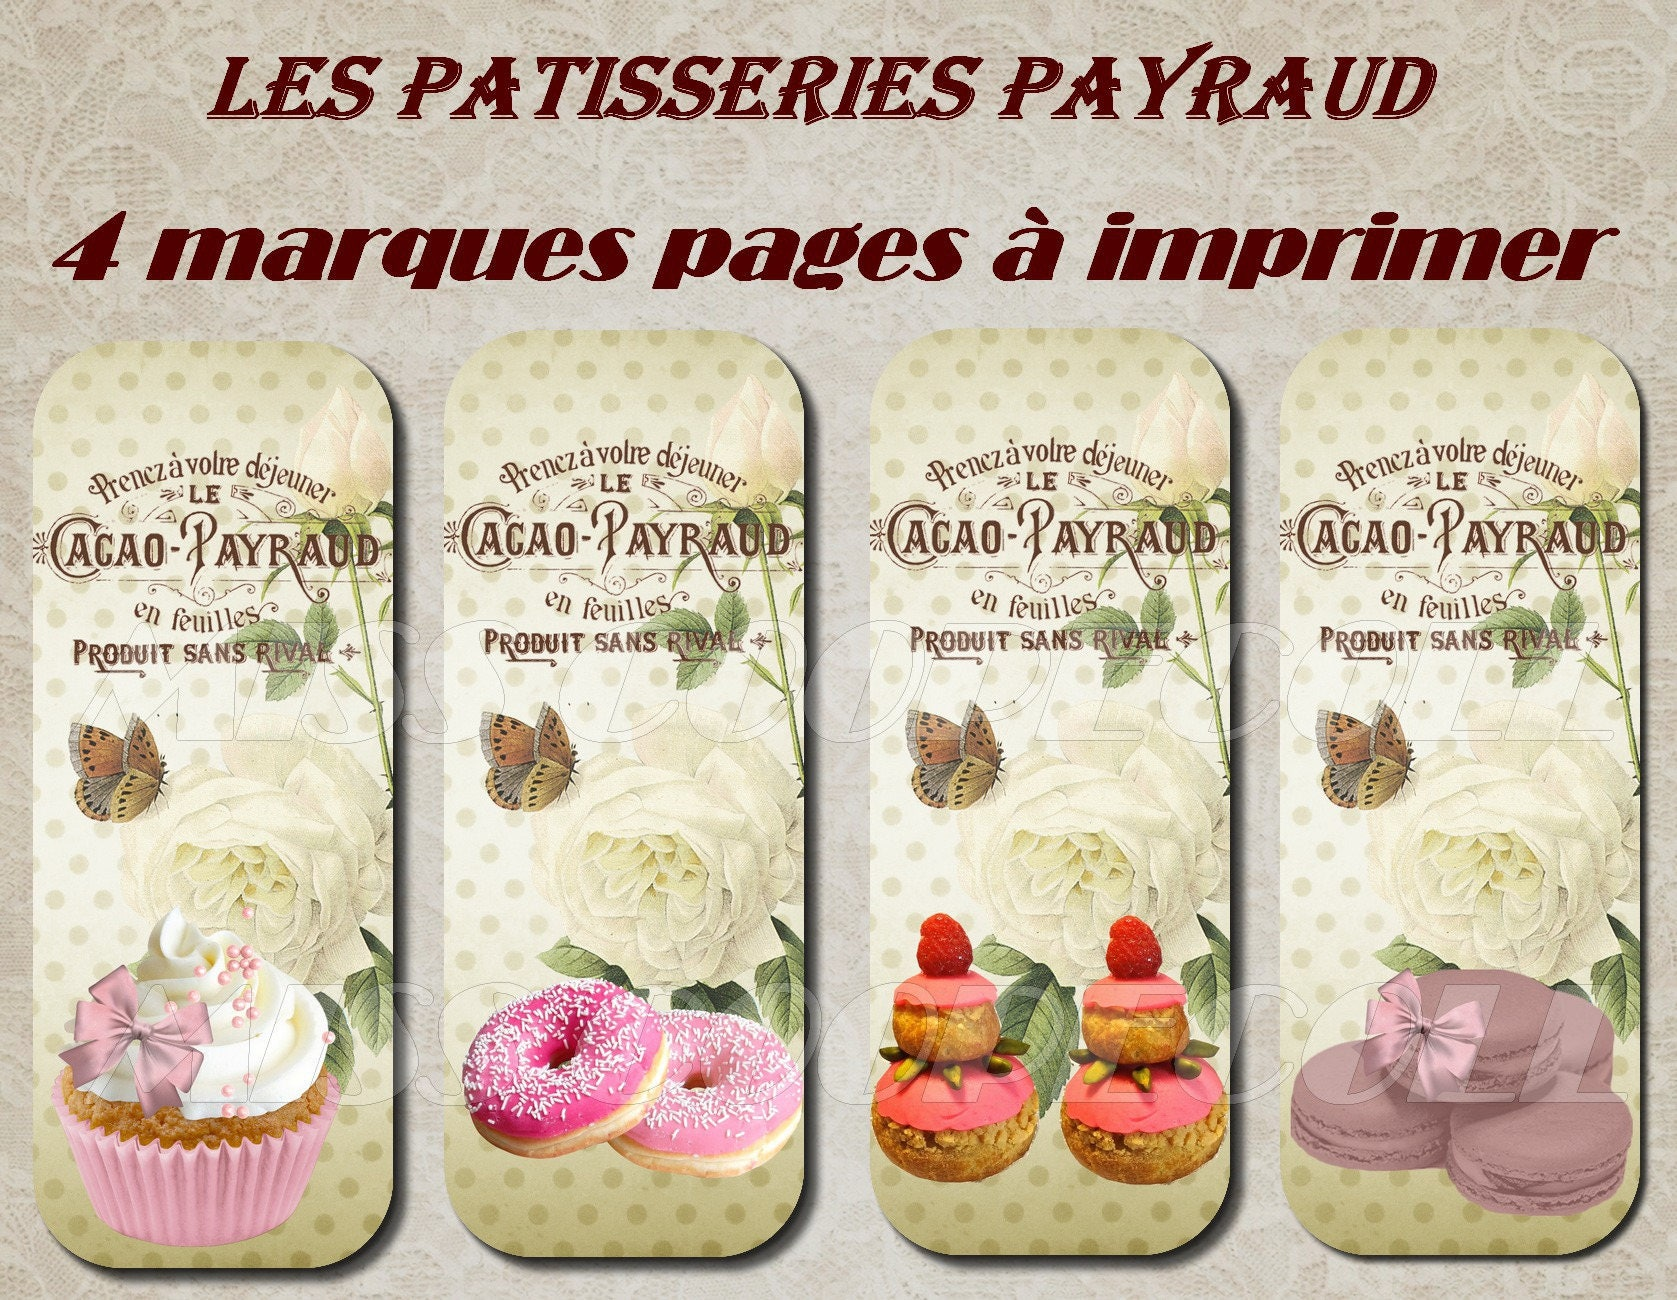 4 marques pages imprimer les patisseries payraud. Black Bedroom Furniture Sets. Home Design Ideas